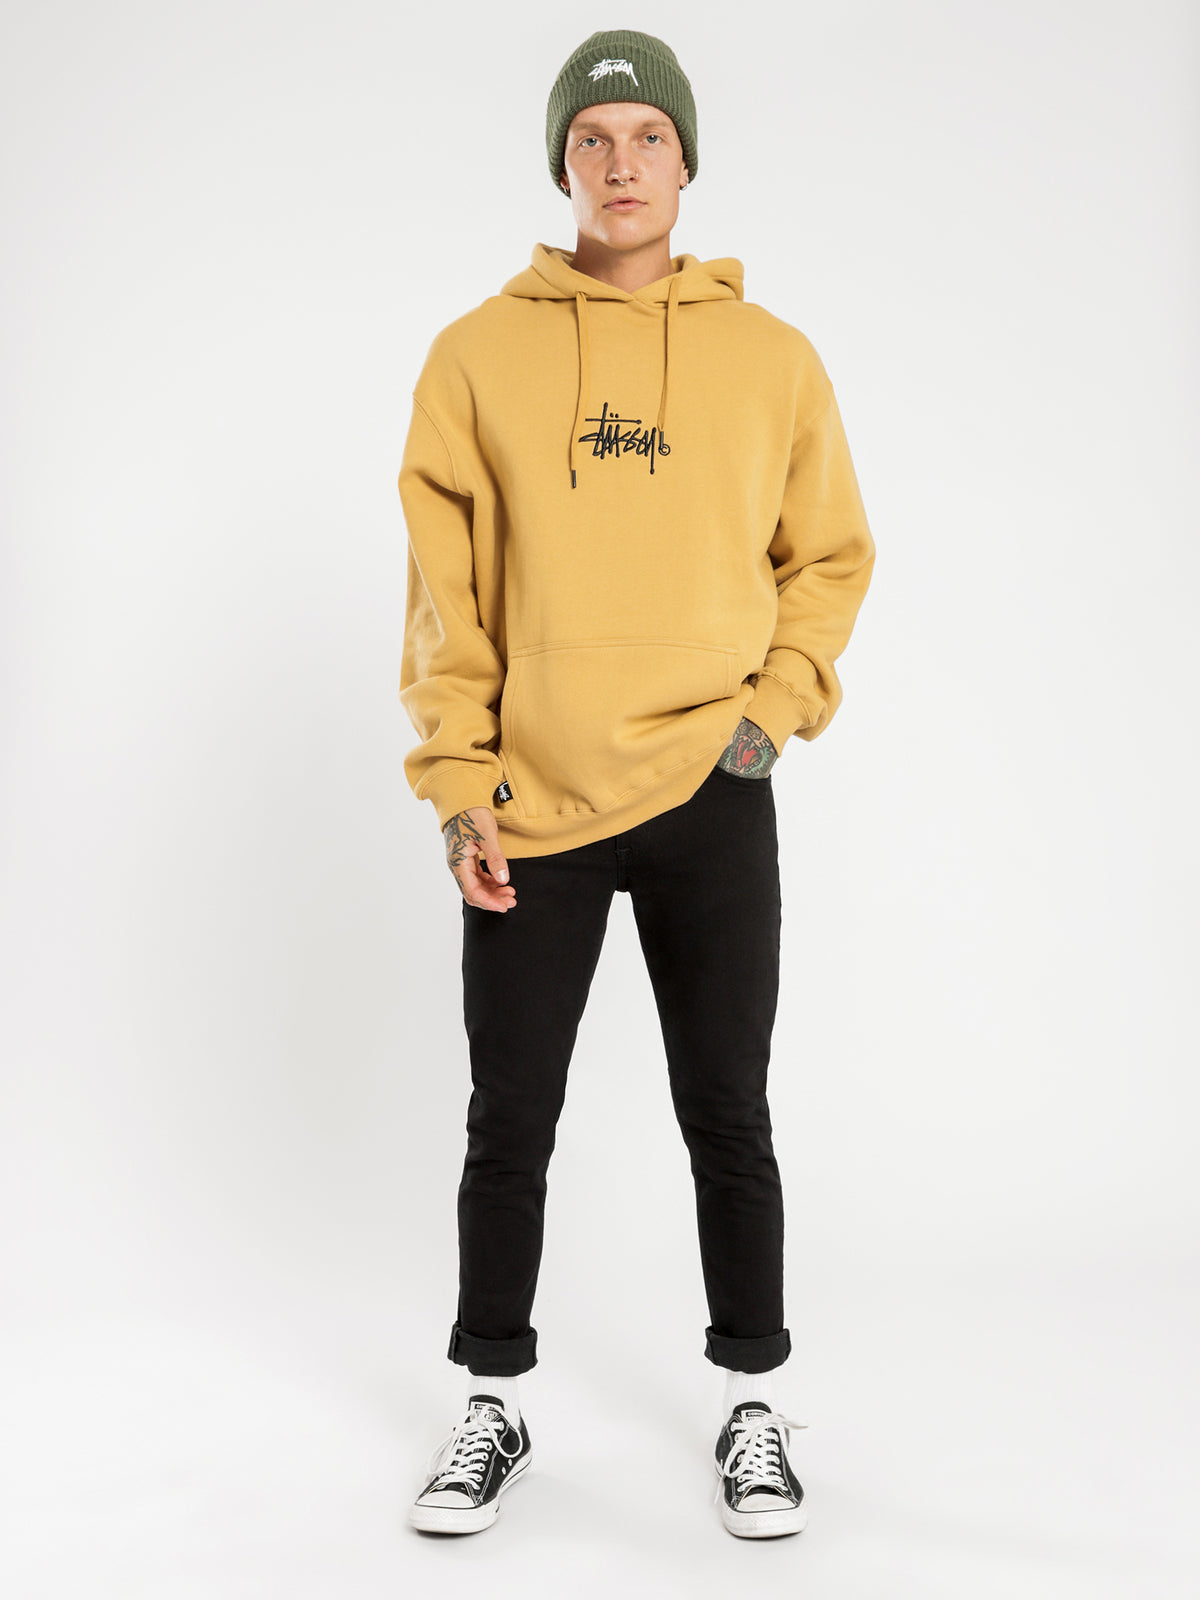 Graffiti Hoodie in Orche Yellow